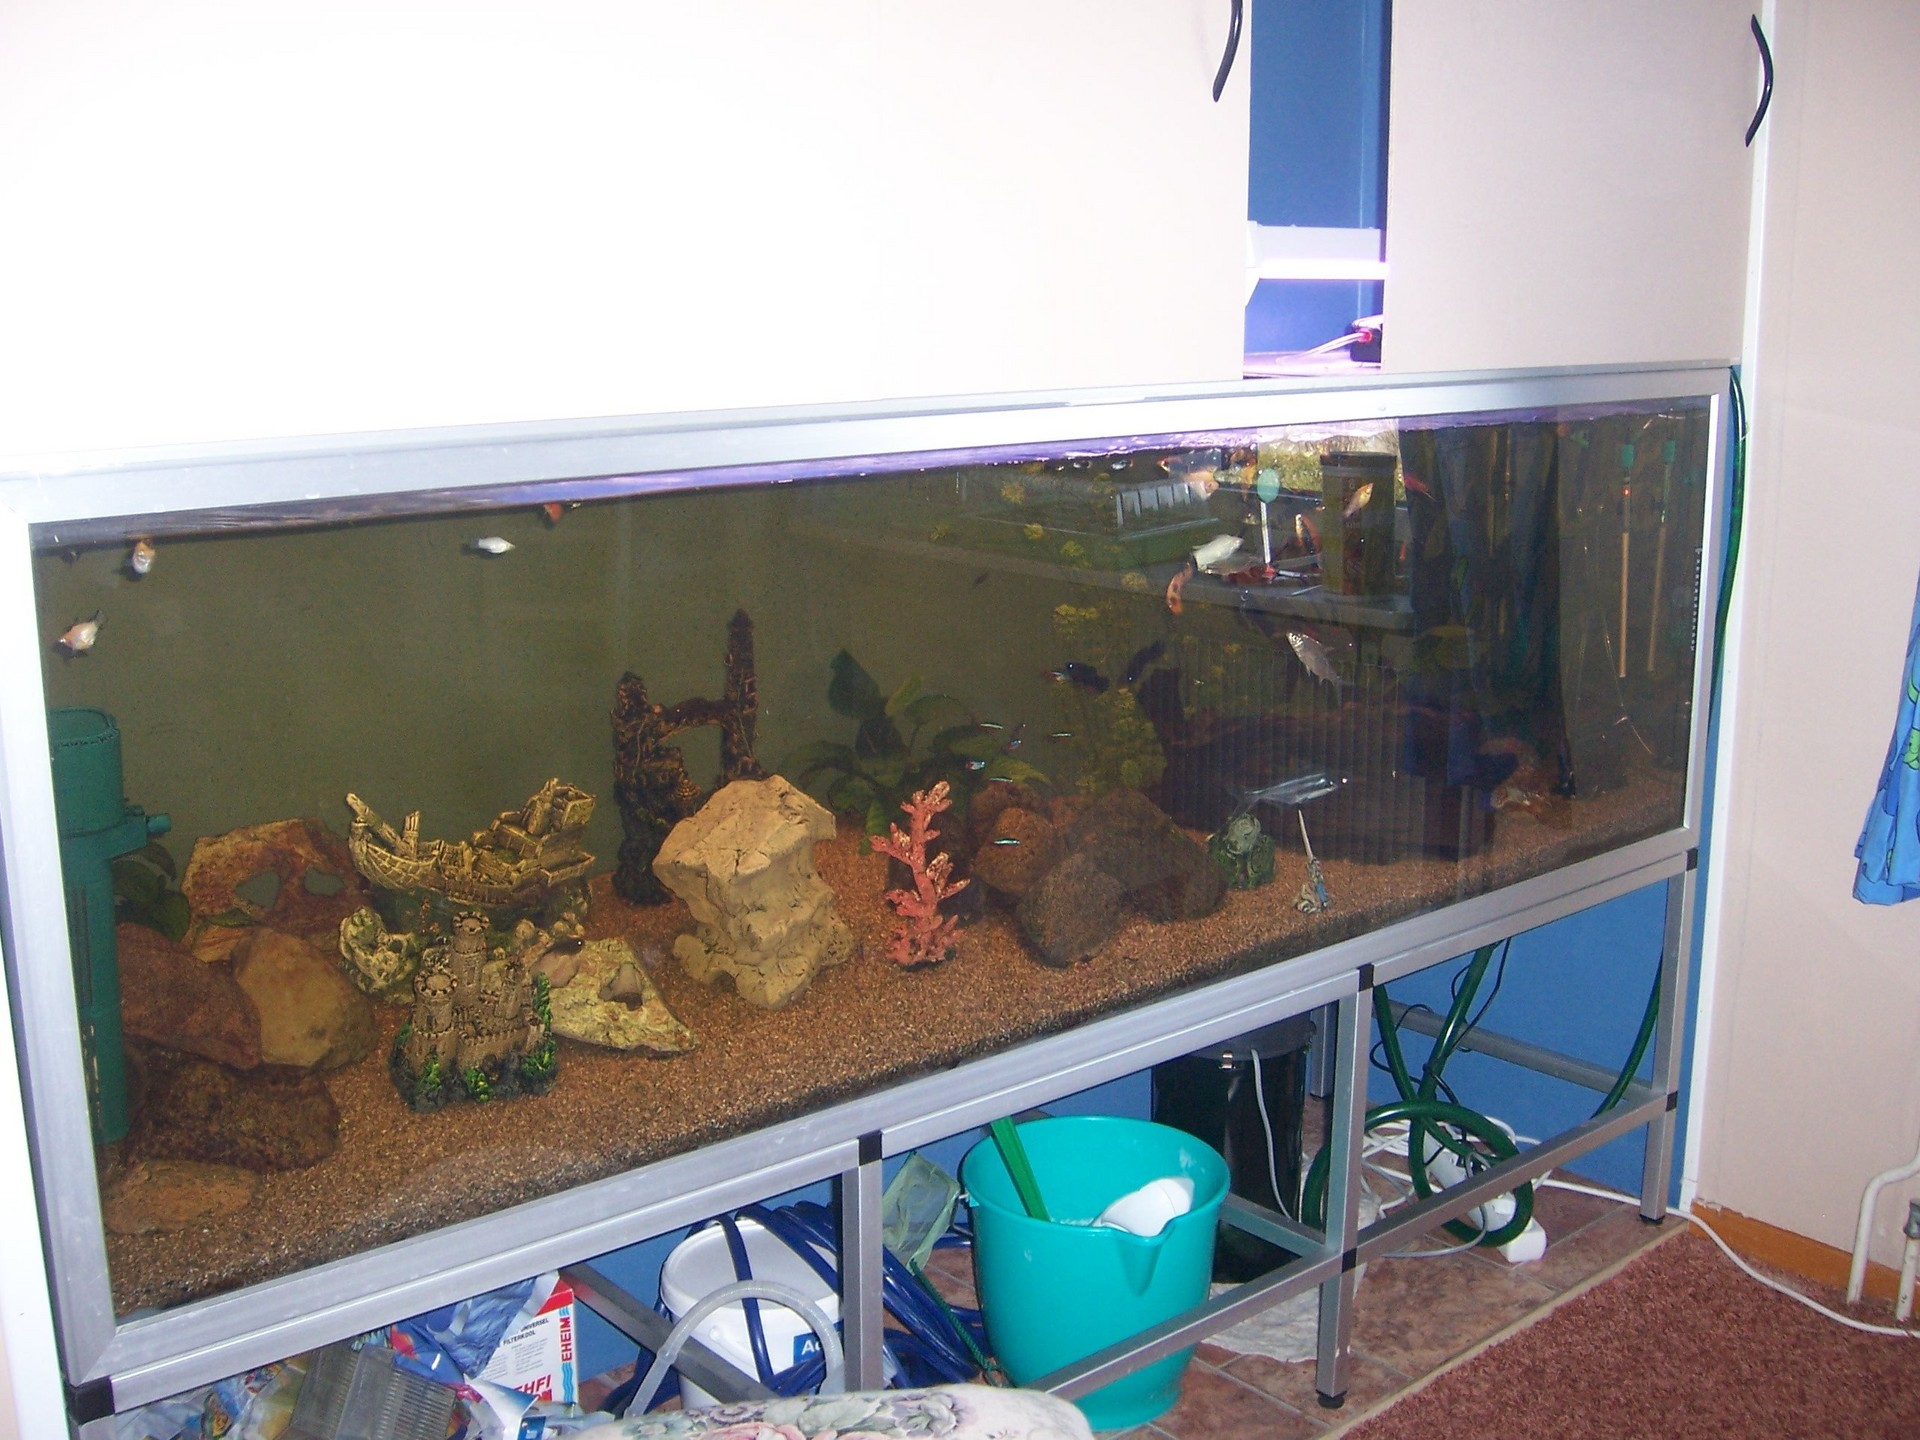 Fish images in wall aquarium hd wallpaper and background for Fish tank in wall